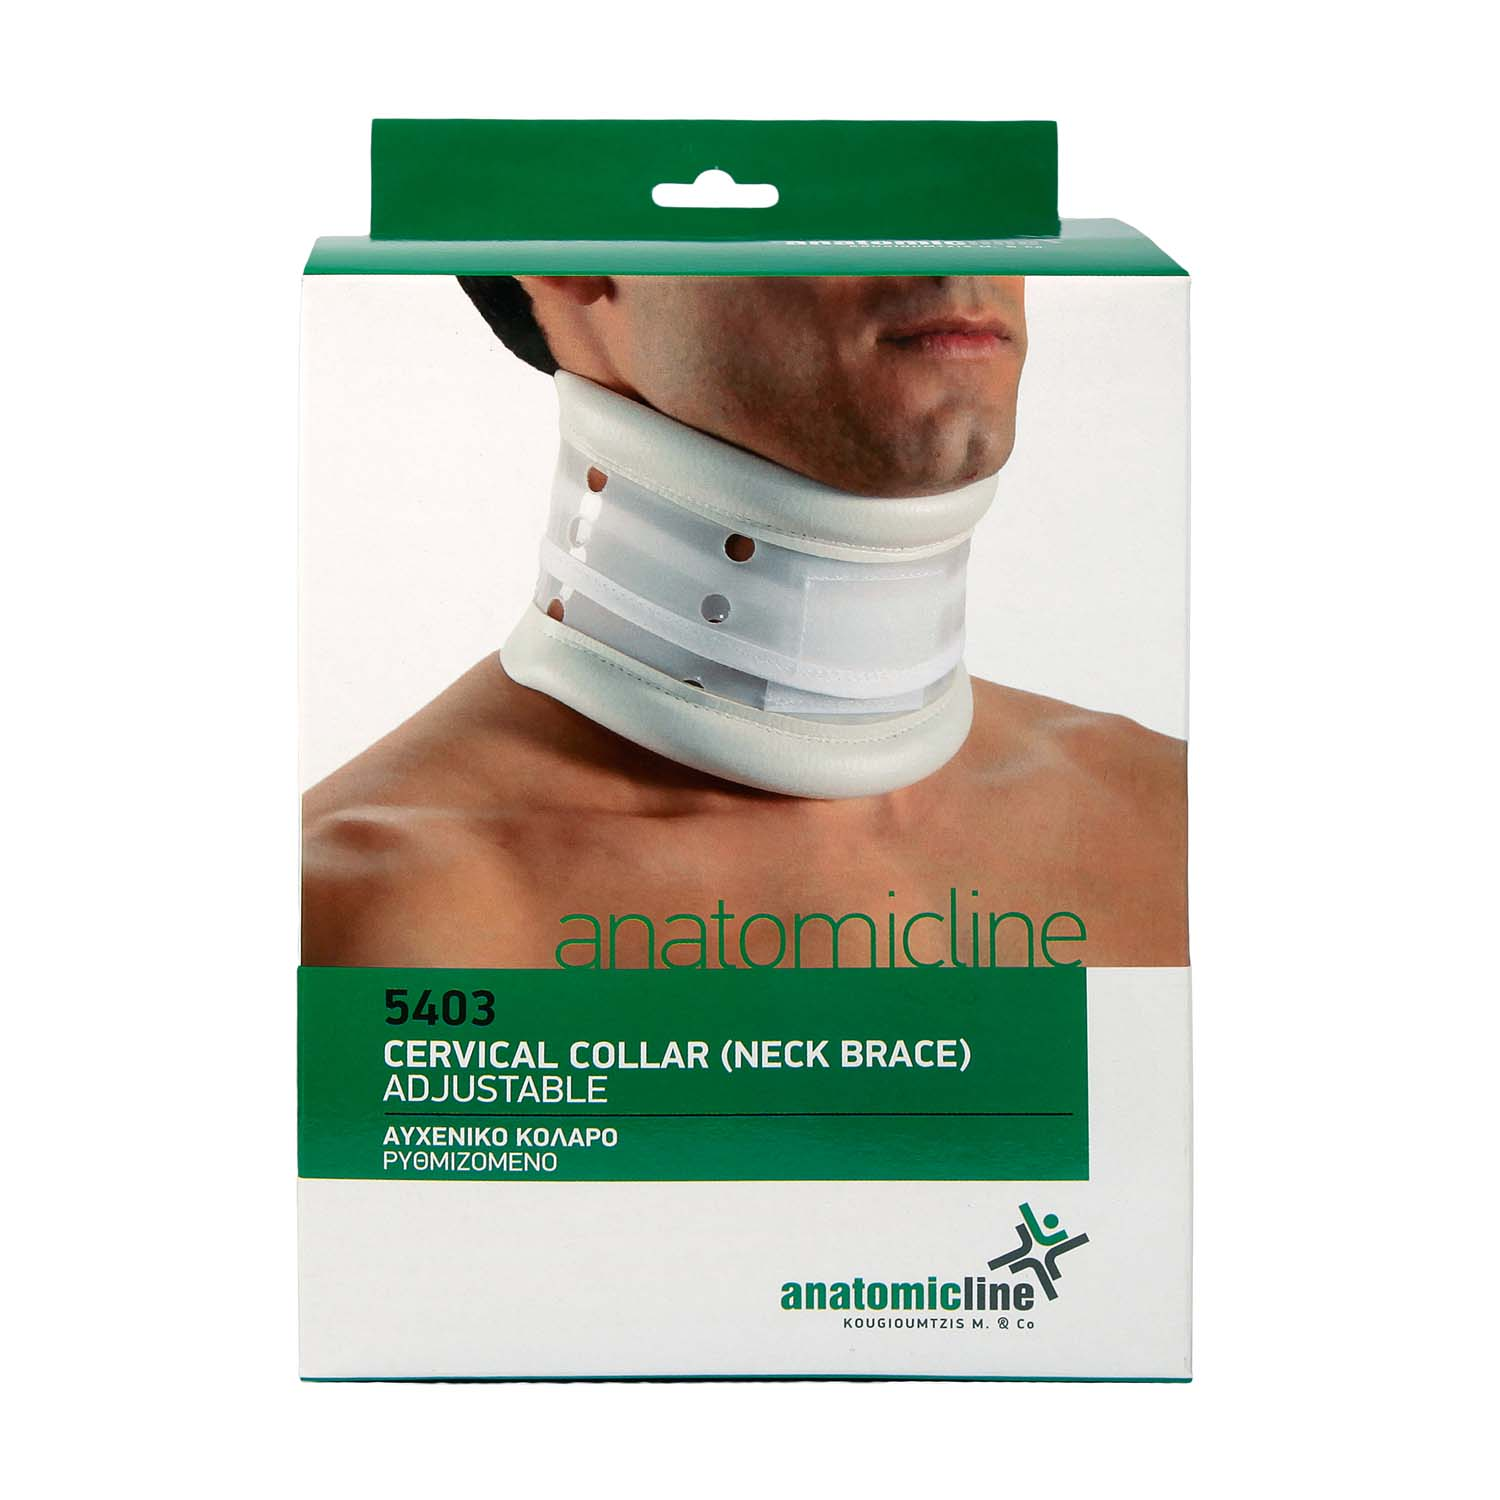 Cervical collar (neck brace) - adjustable